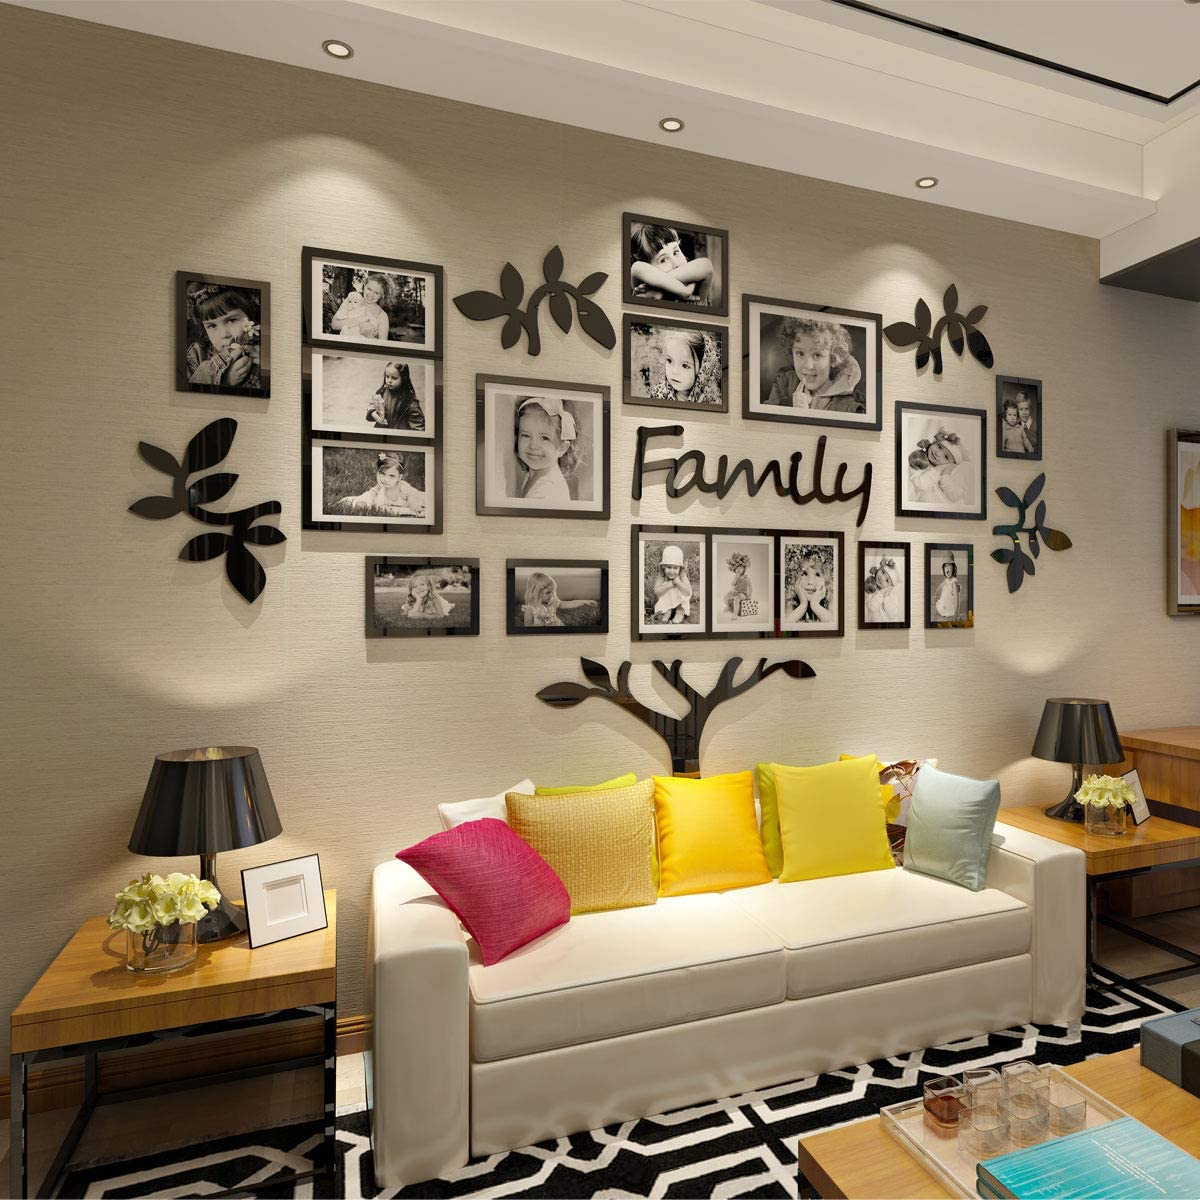 CrazyDeal Family Tree Wall Decal Picture Frame Collage 23D DIY Stickers  Decorations Art for Living Room Home Decor Gallery Large